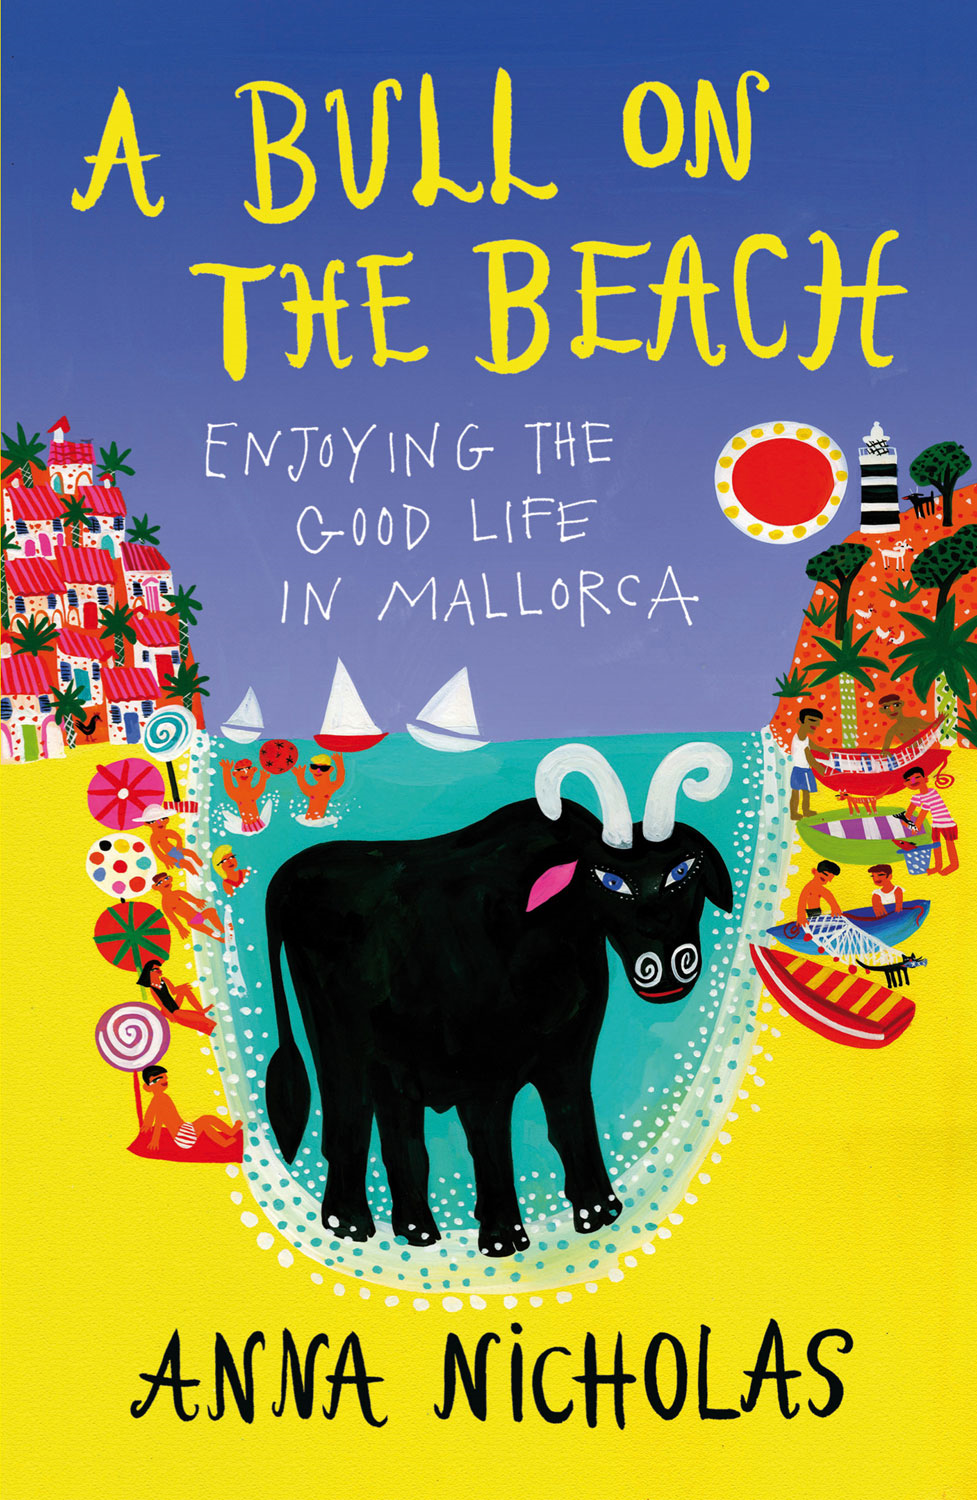 A Bull on the Beach